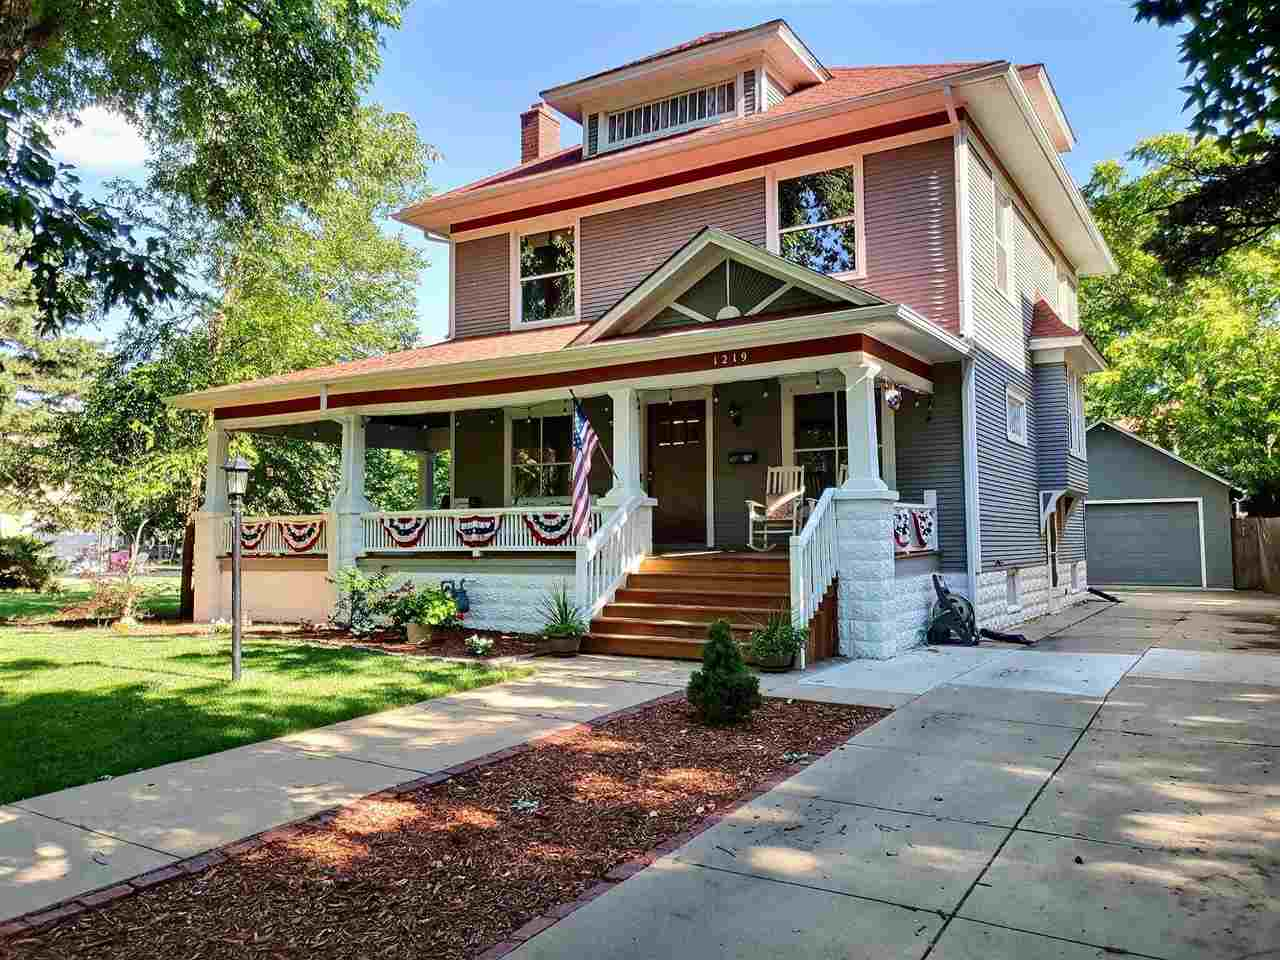 Beautiful, well maintained home just blocks from Botanica and the river. This home has many of the o